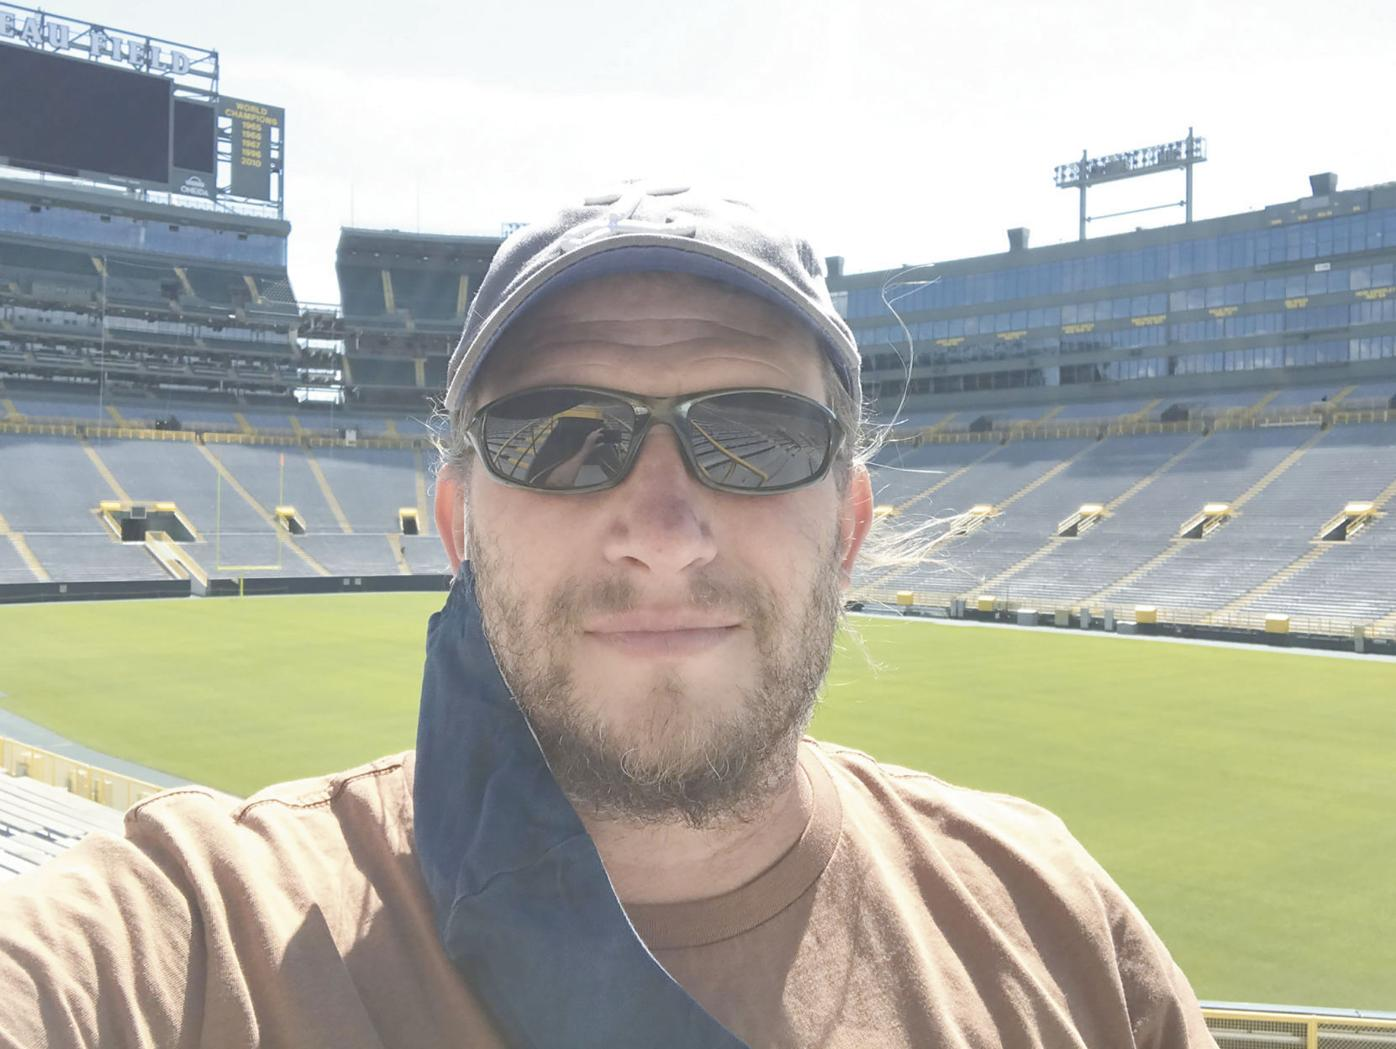 At Lambeau Field